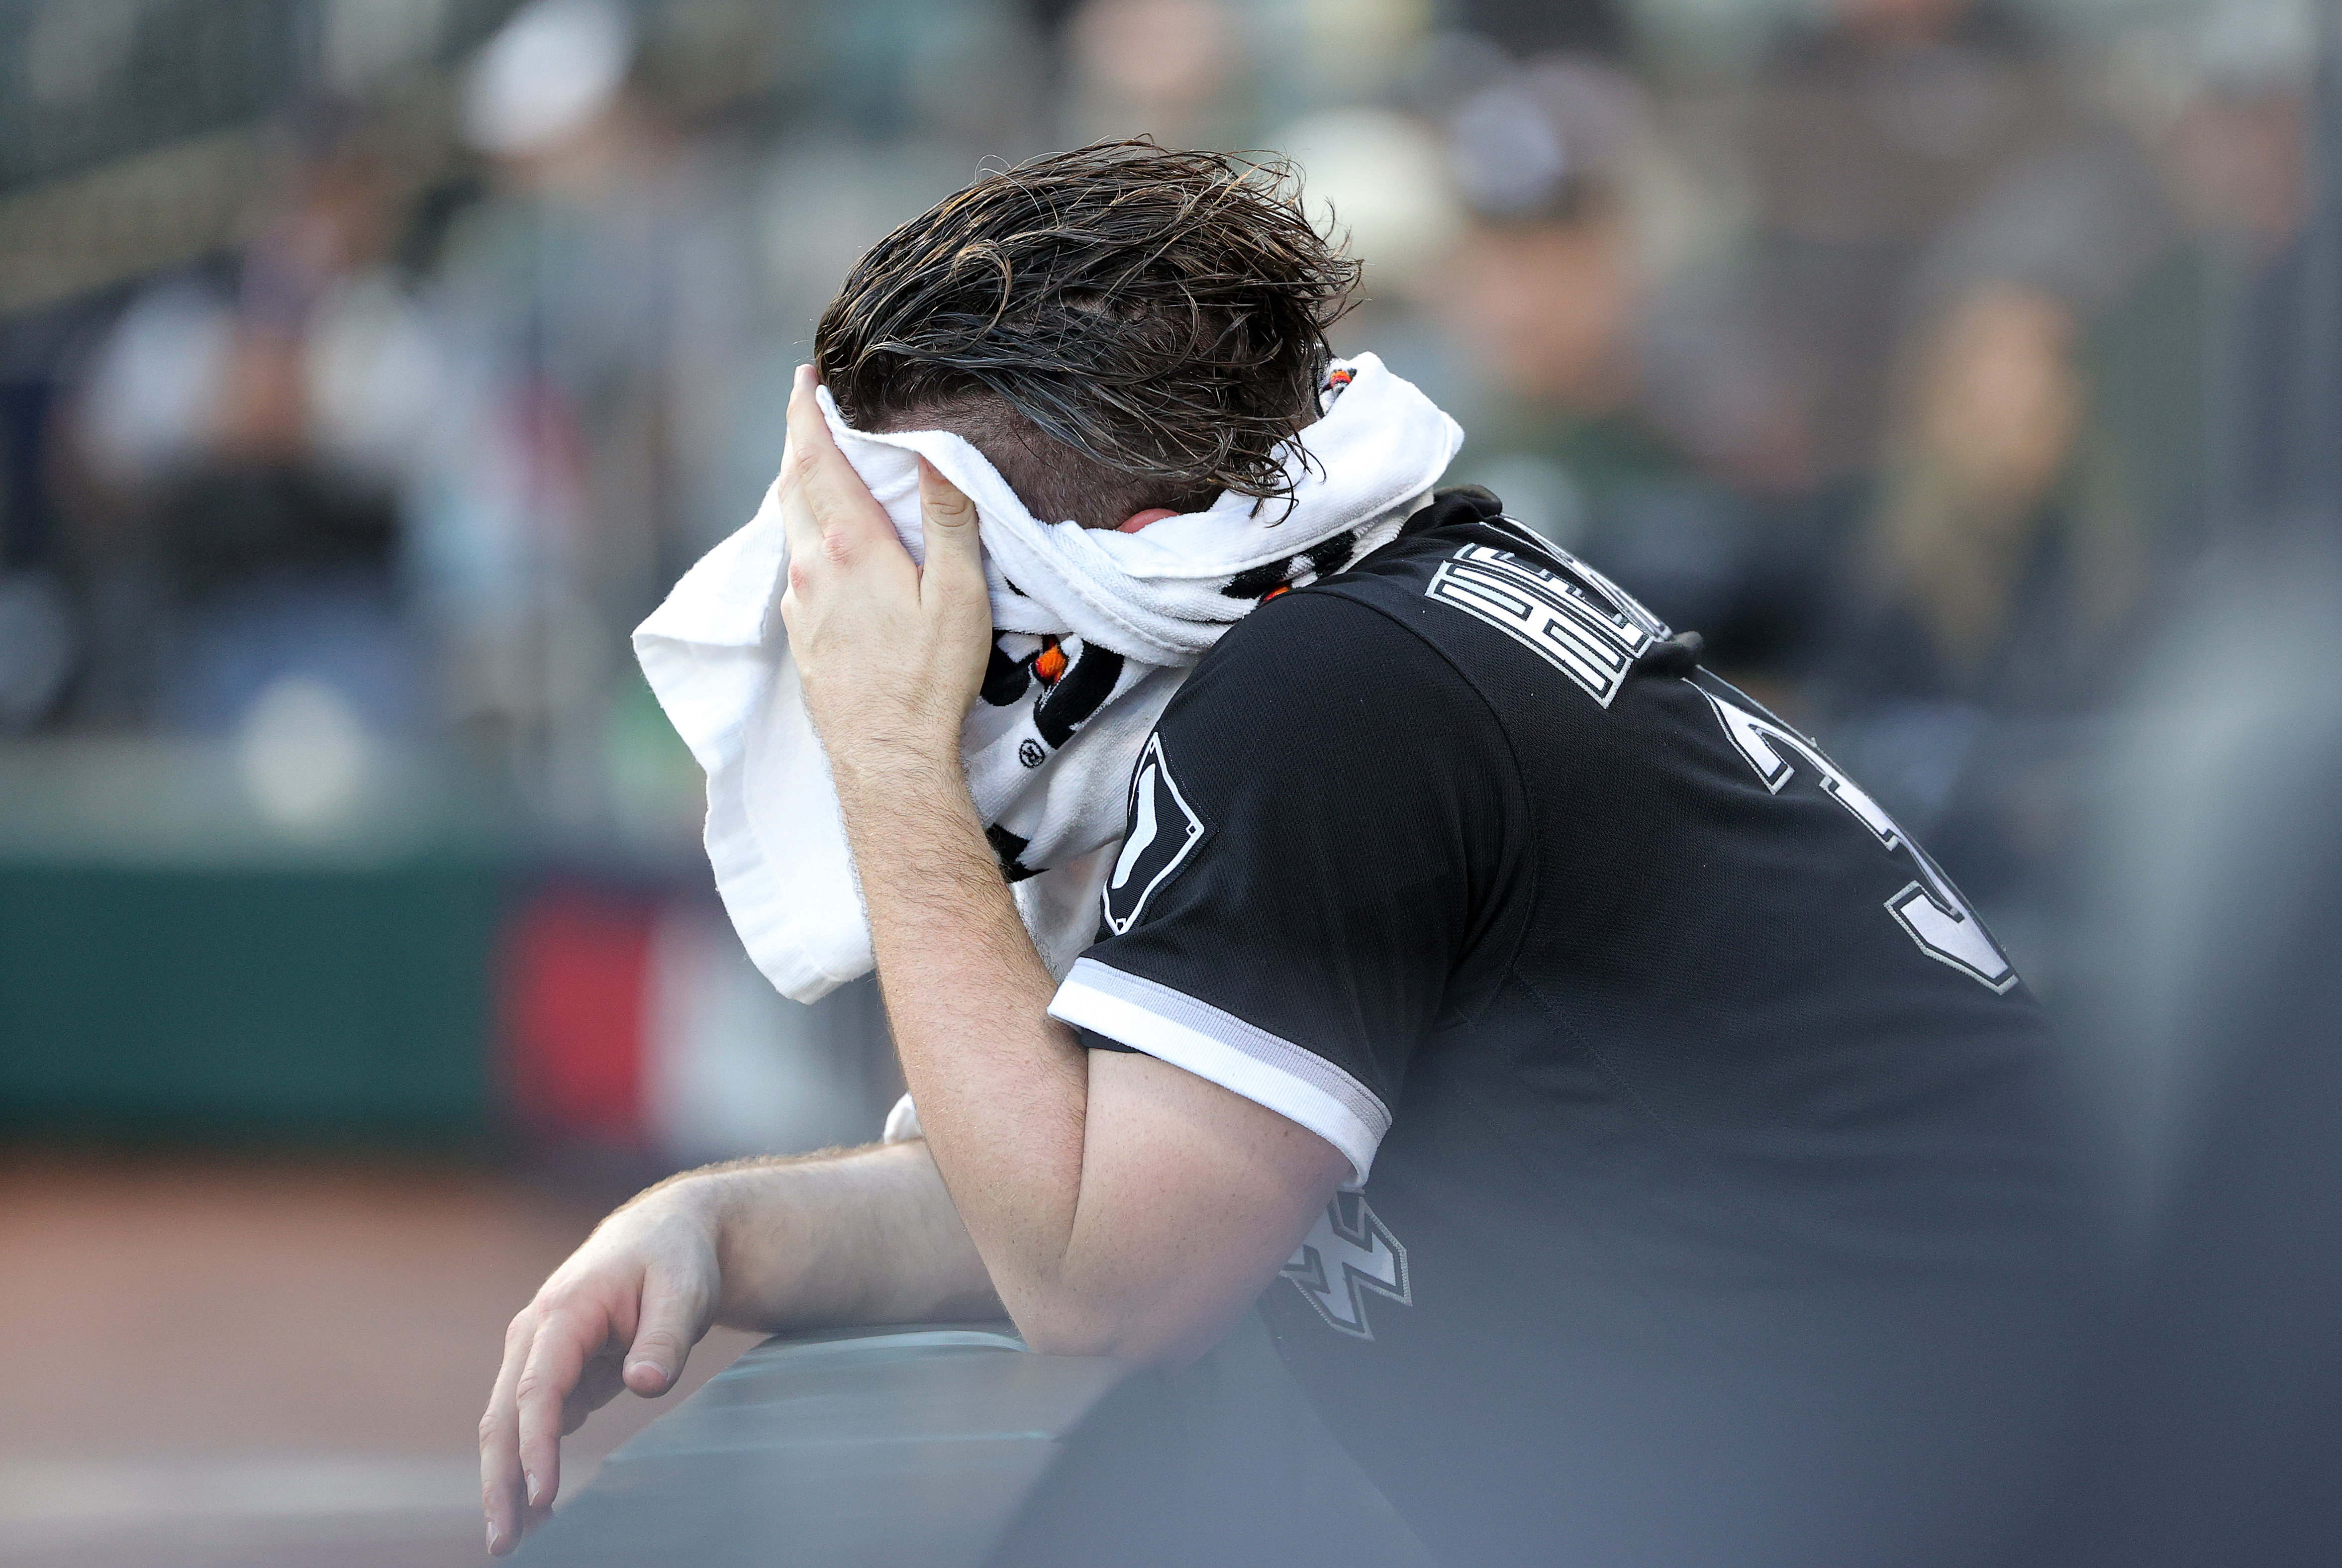 White Sox closer Liam Hendriks hides his face in a towel after the Houston Astros' 10-1 win in Game 4 of the American League Division Series at Guaranteed Rate Field.